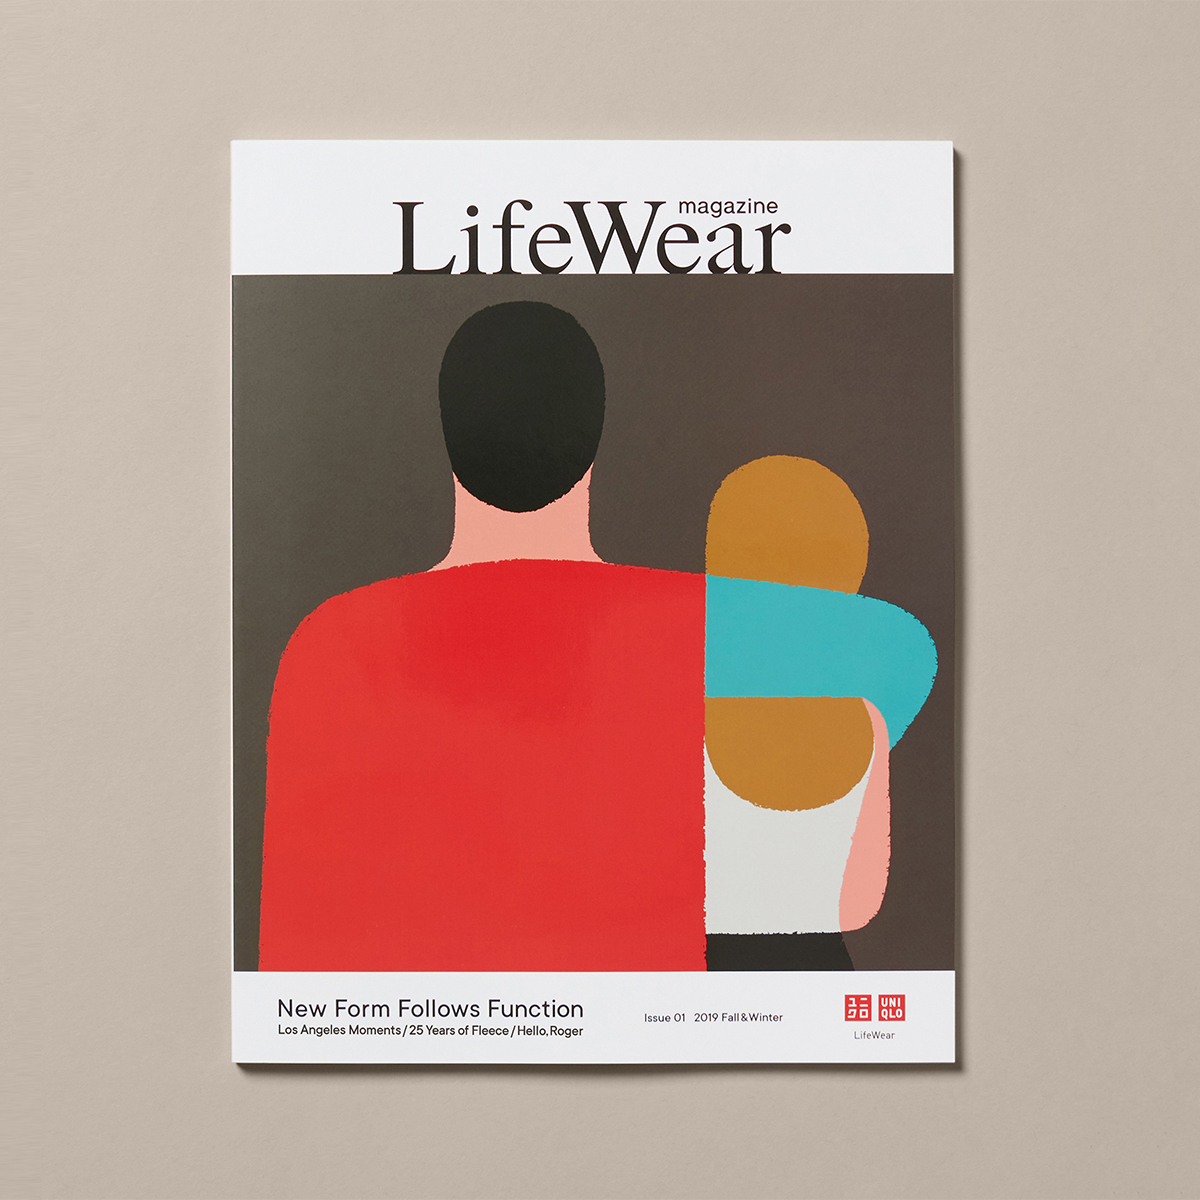 UNIQLO LifeWear magazine Issue 01